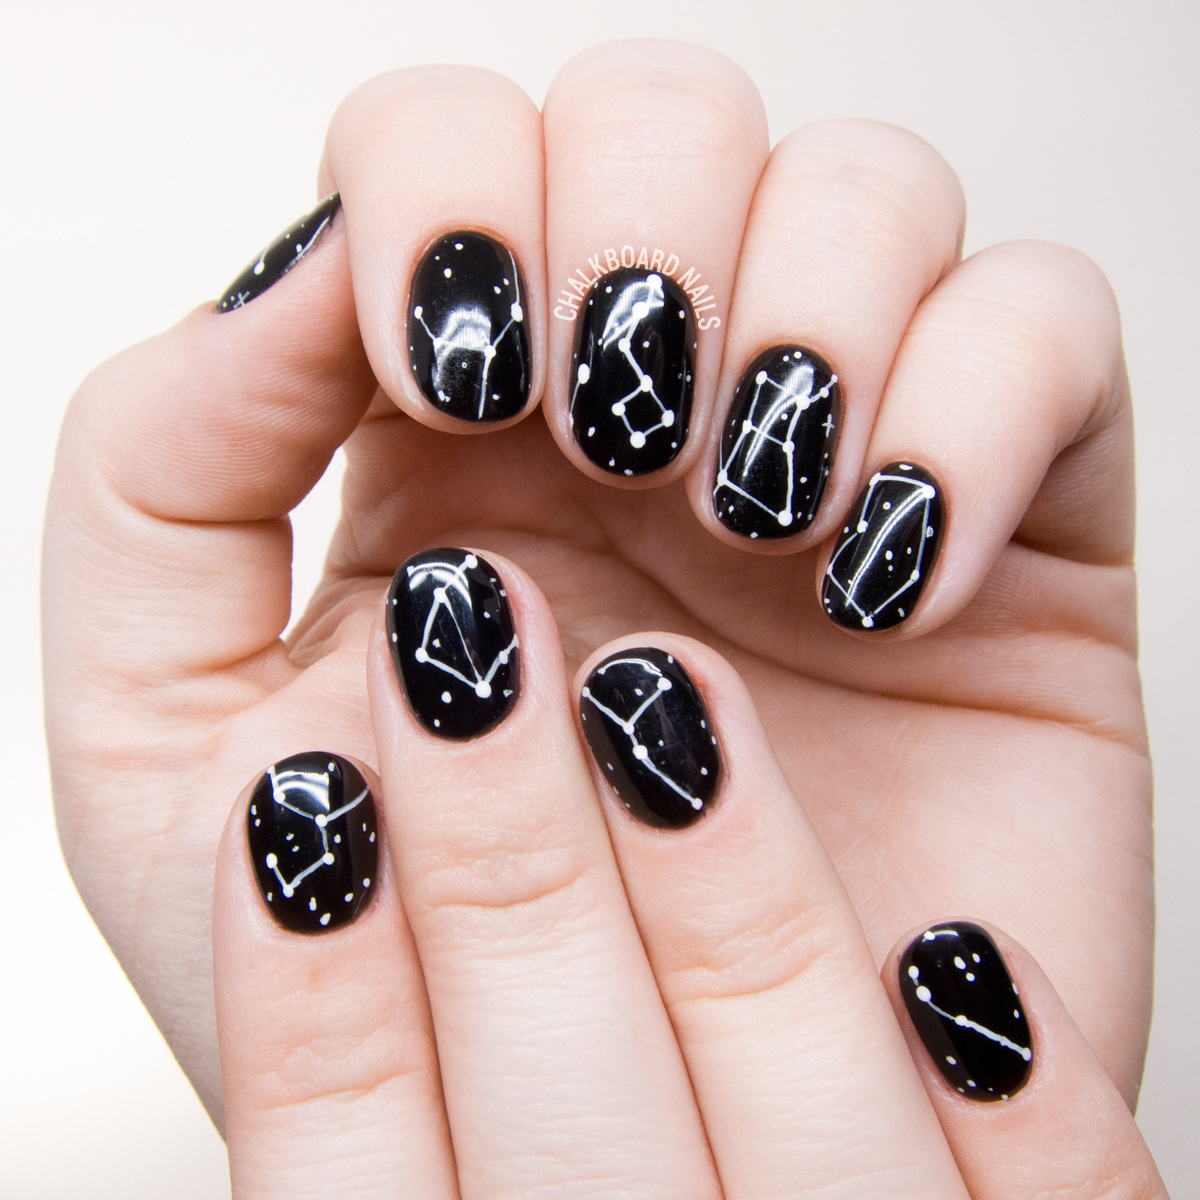 Simple Constellation Nail Art | Chalkboard Nails | Nail Art Blog